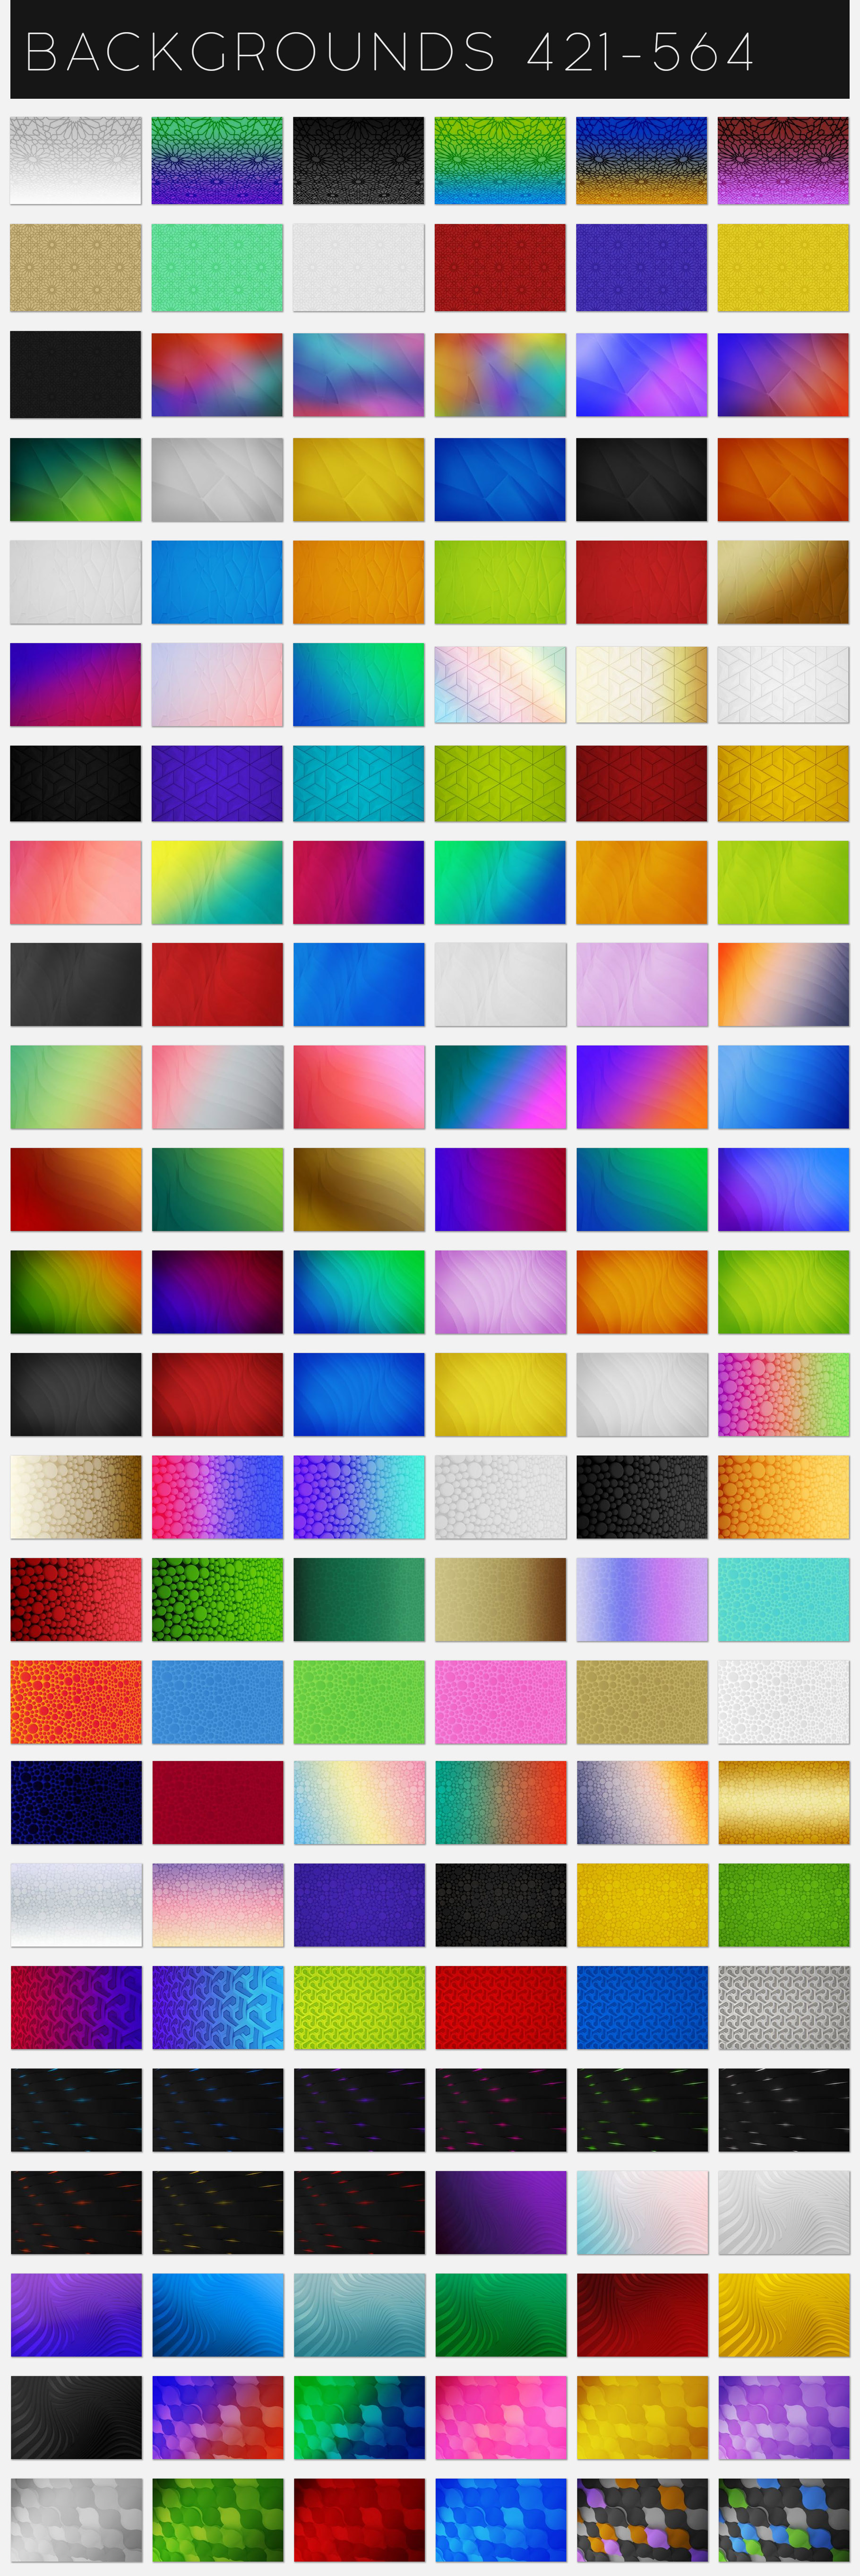 Abstract Backgrounds Volume 1 example image 15